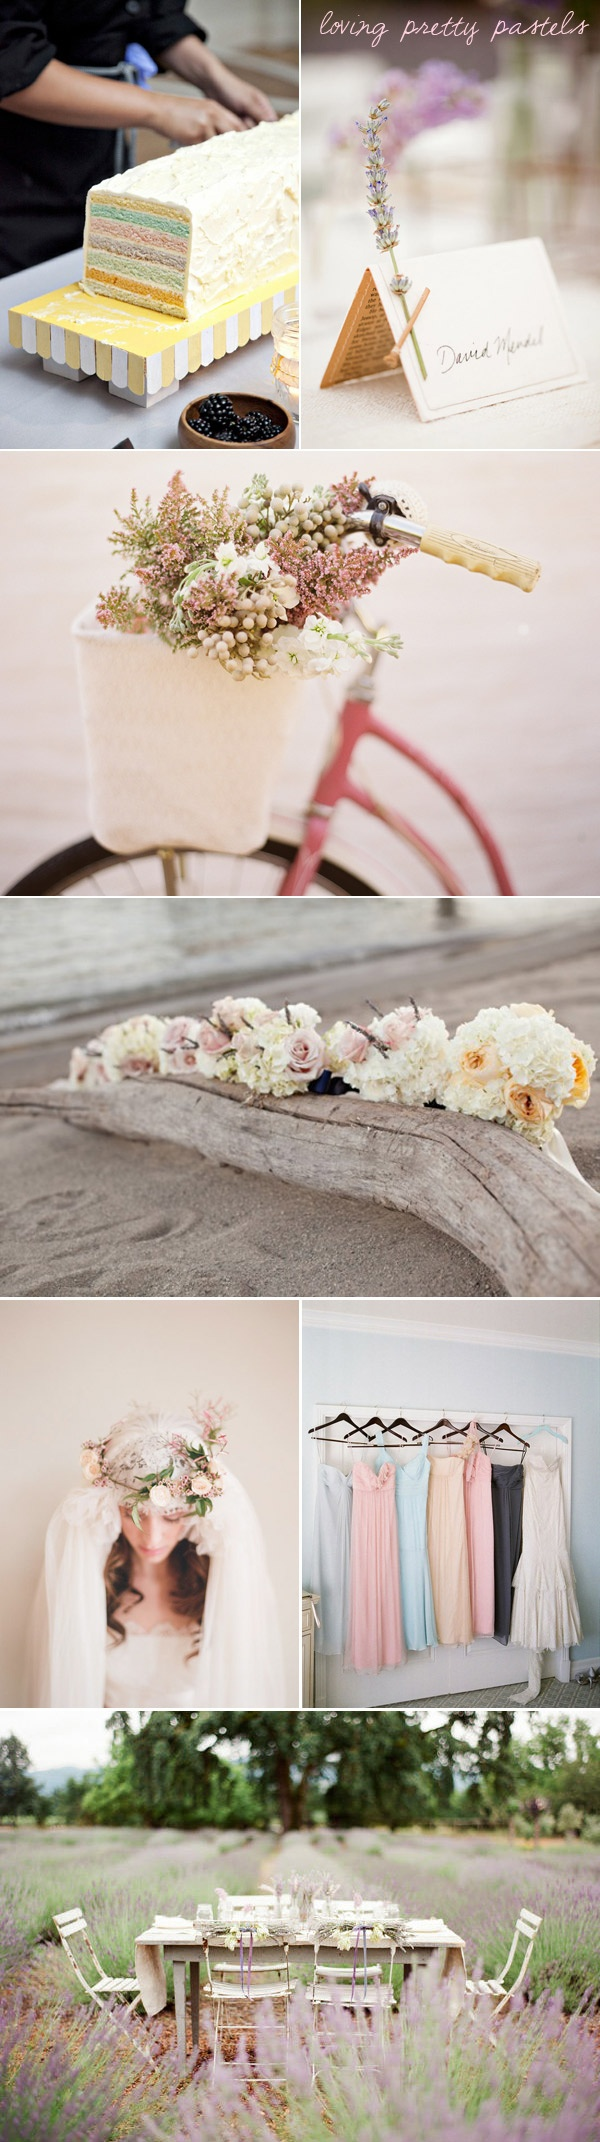 Pastels are so popular for 2013 weddings. Love the driftwood flower arrangement.